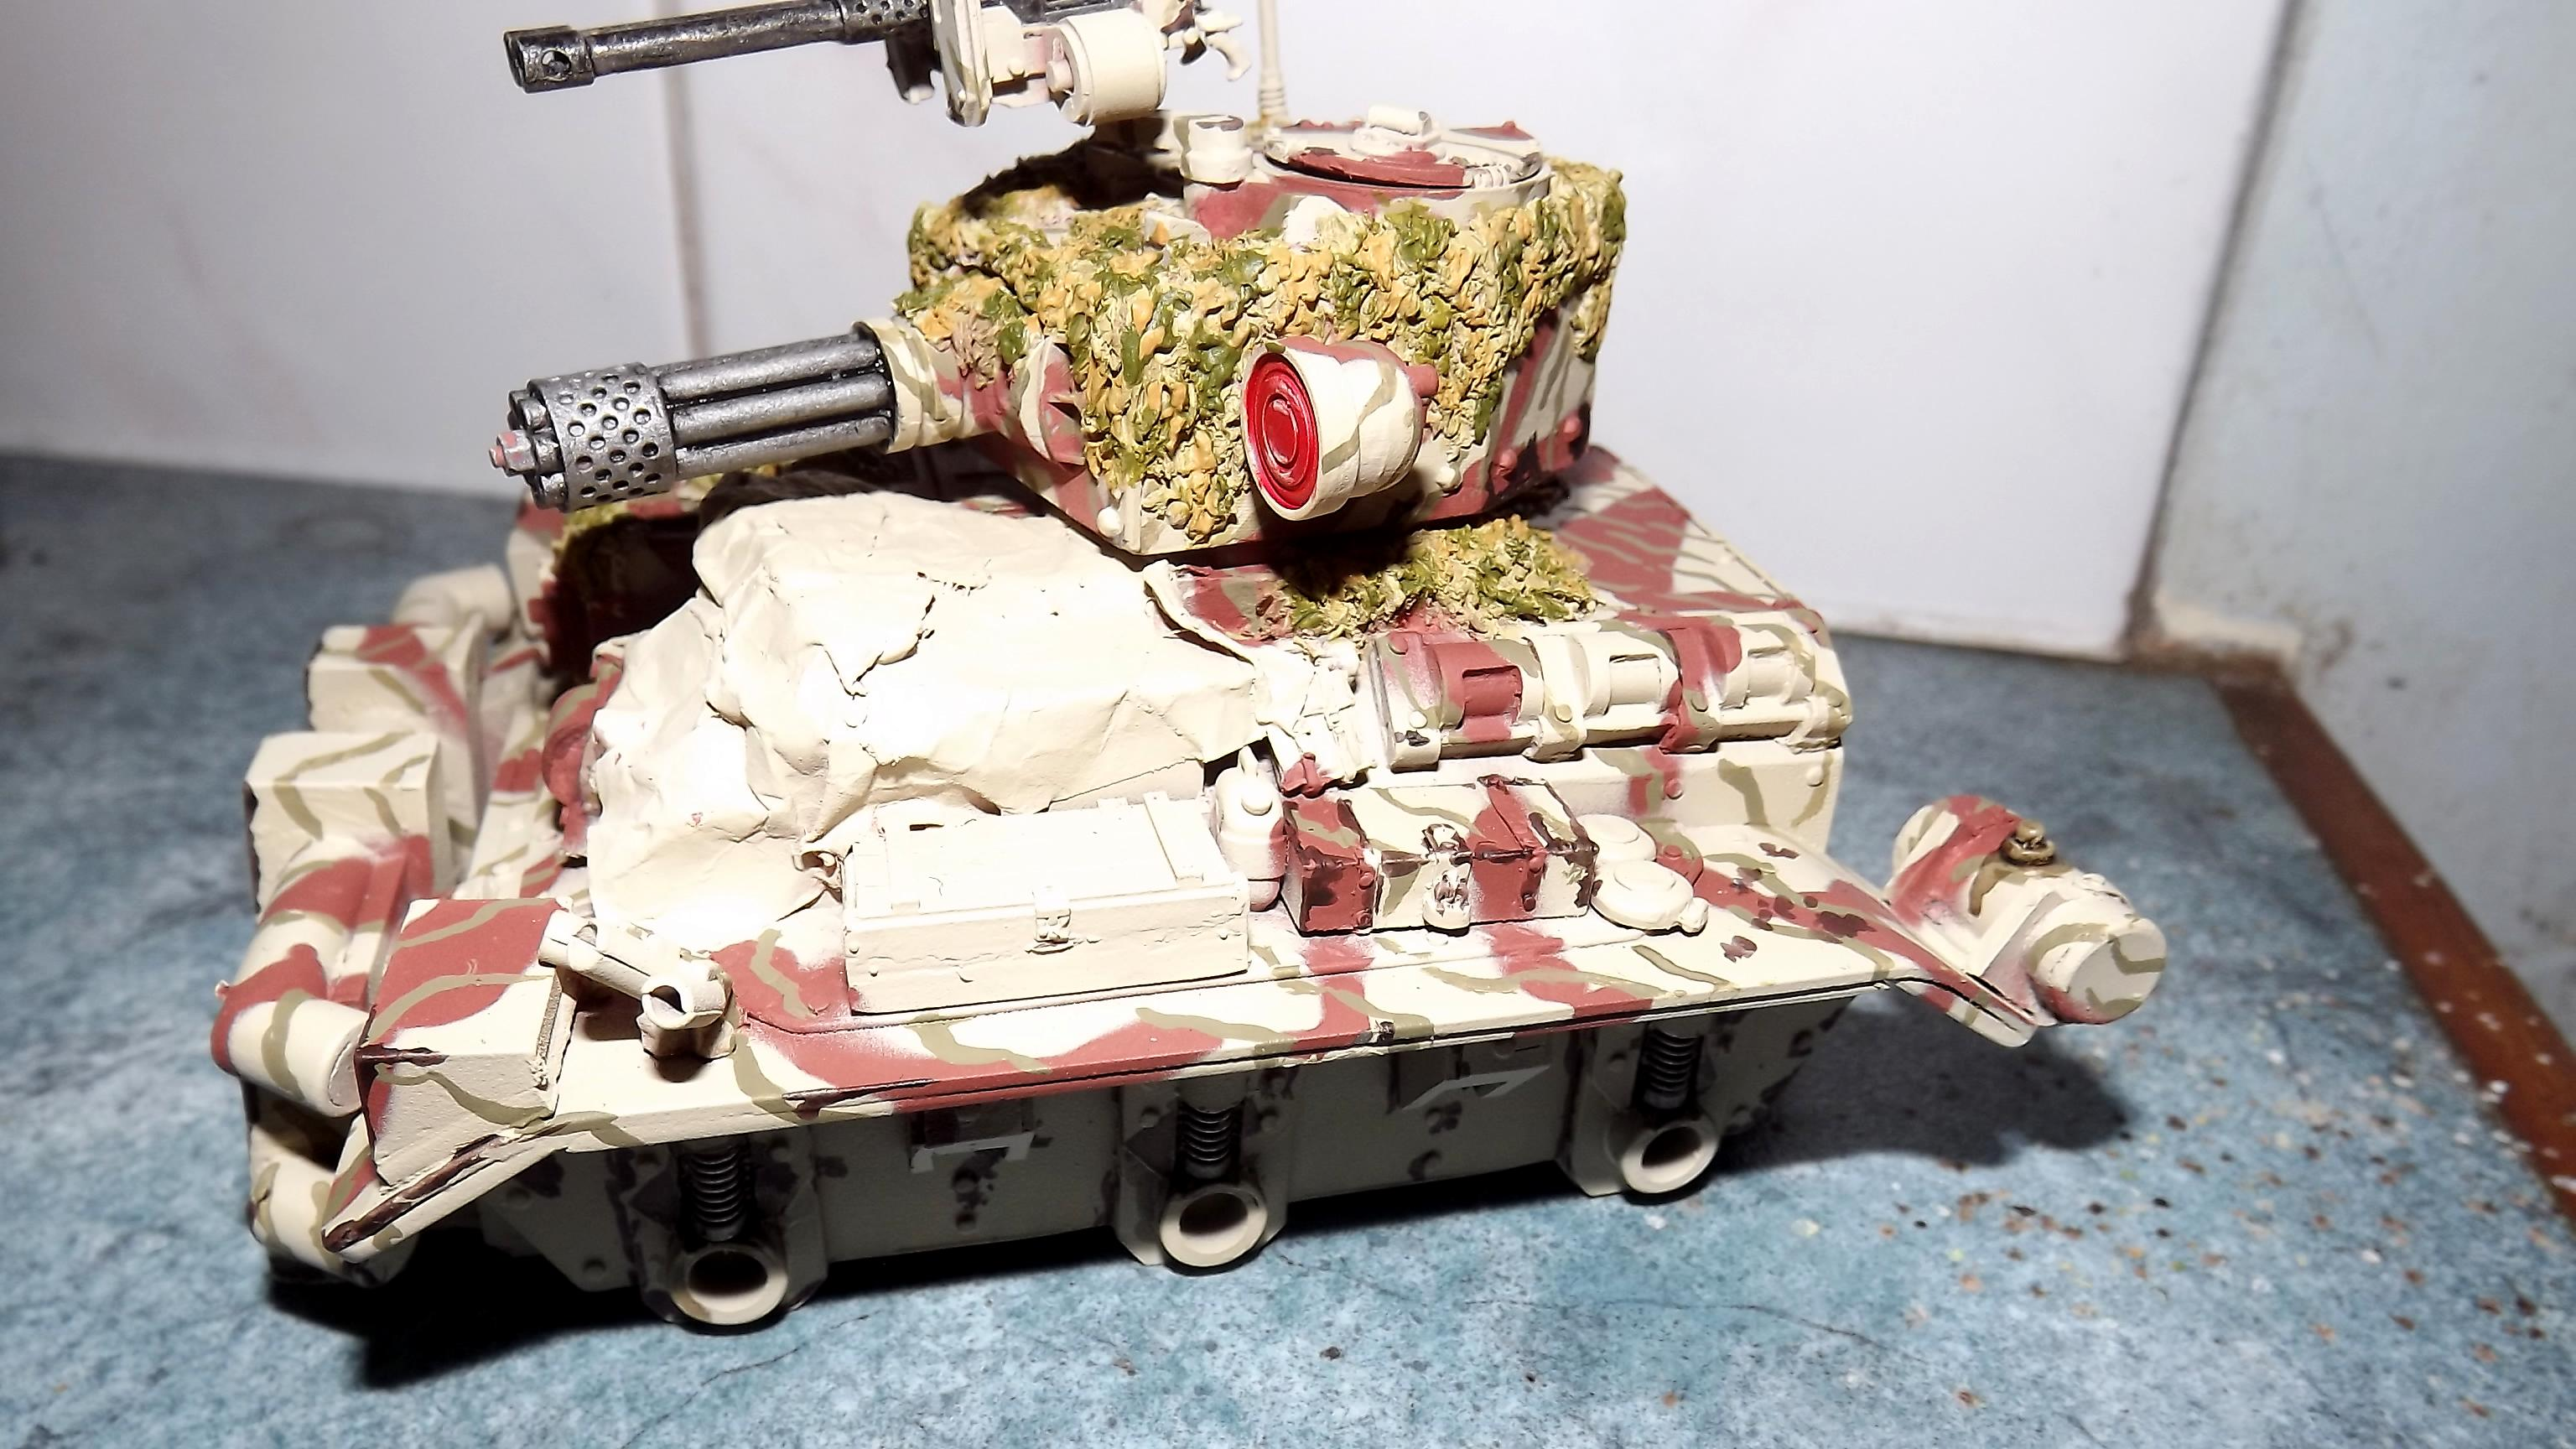 Conversion, Fire Support, Ifv, Ramshackle Games, Rhebok, Victoria Miniatures, Wheeled Vehicle